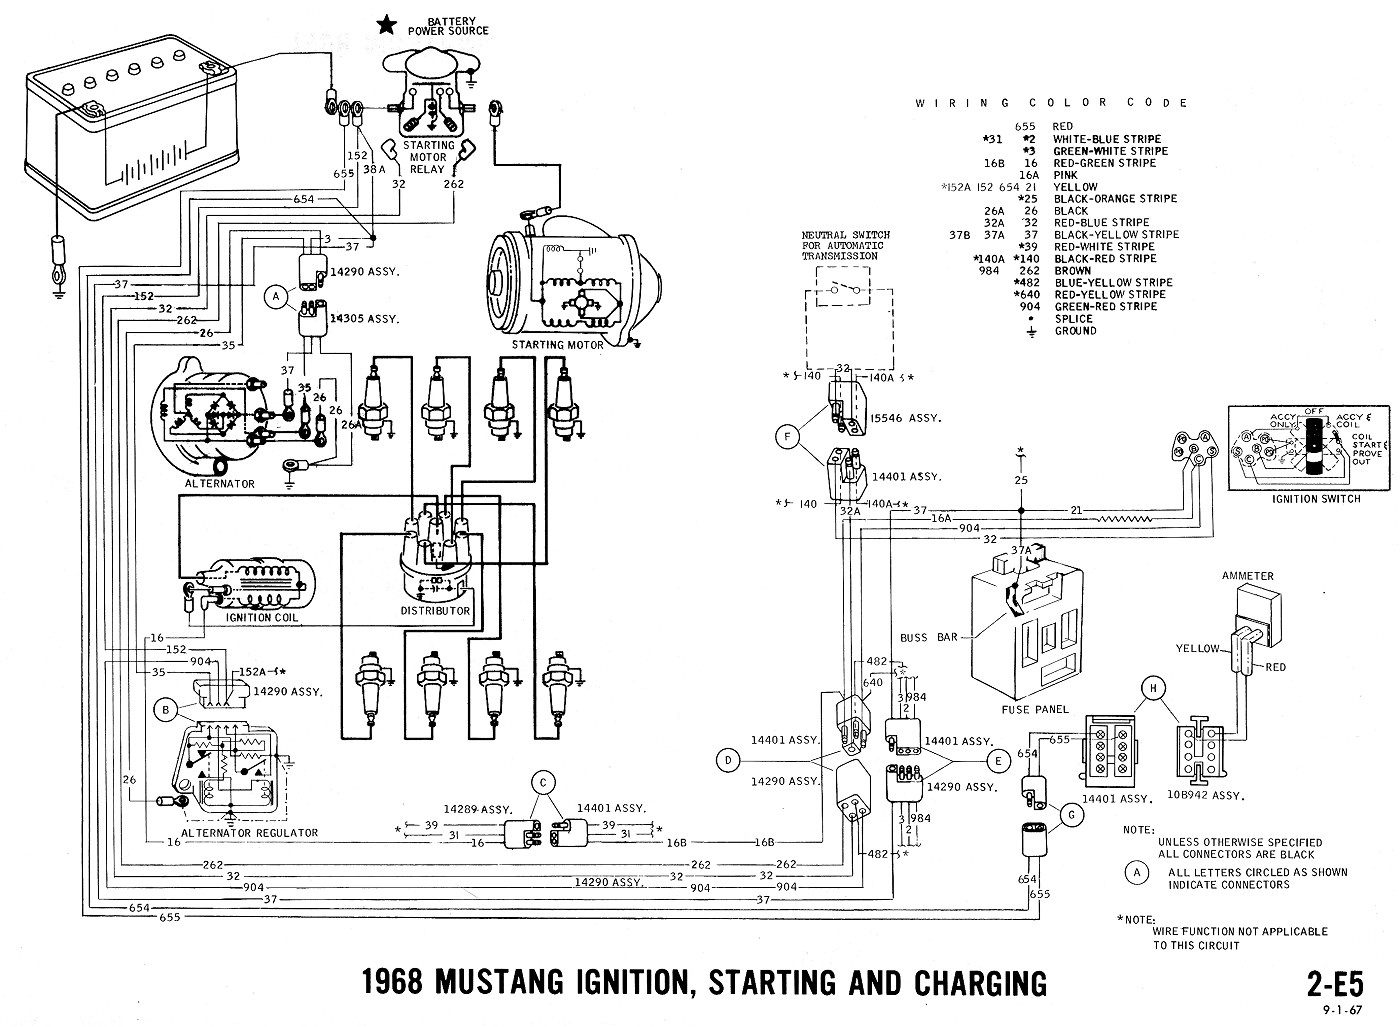 67 mustang wiring diagram charge light electrical diagrams schematics 2009  dodge charger ignition switch 1968 mustang